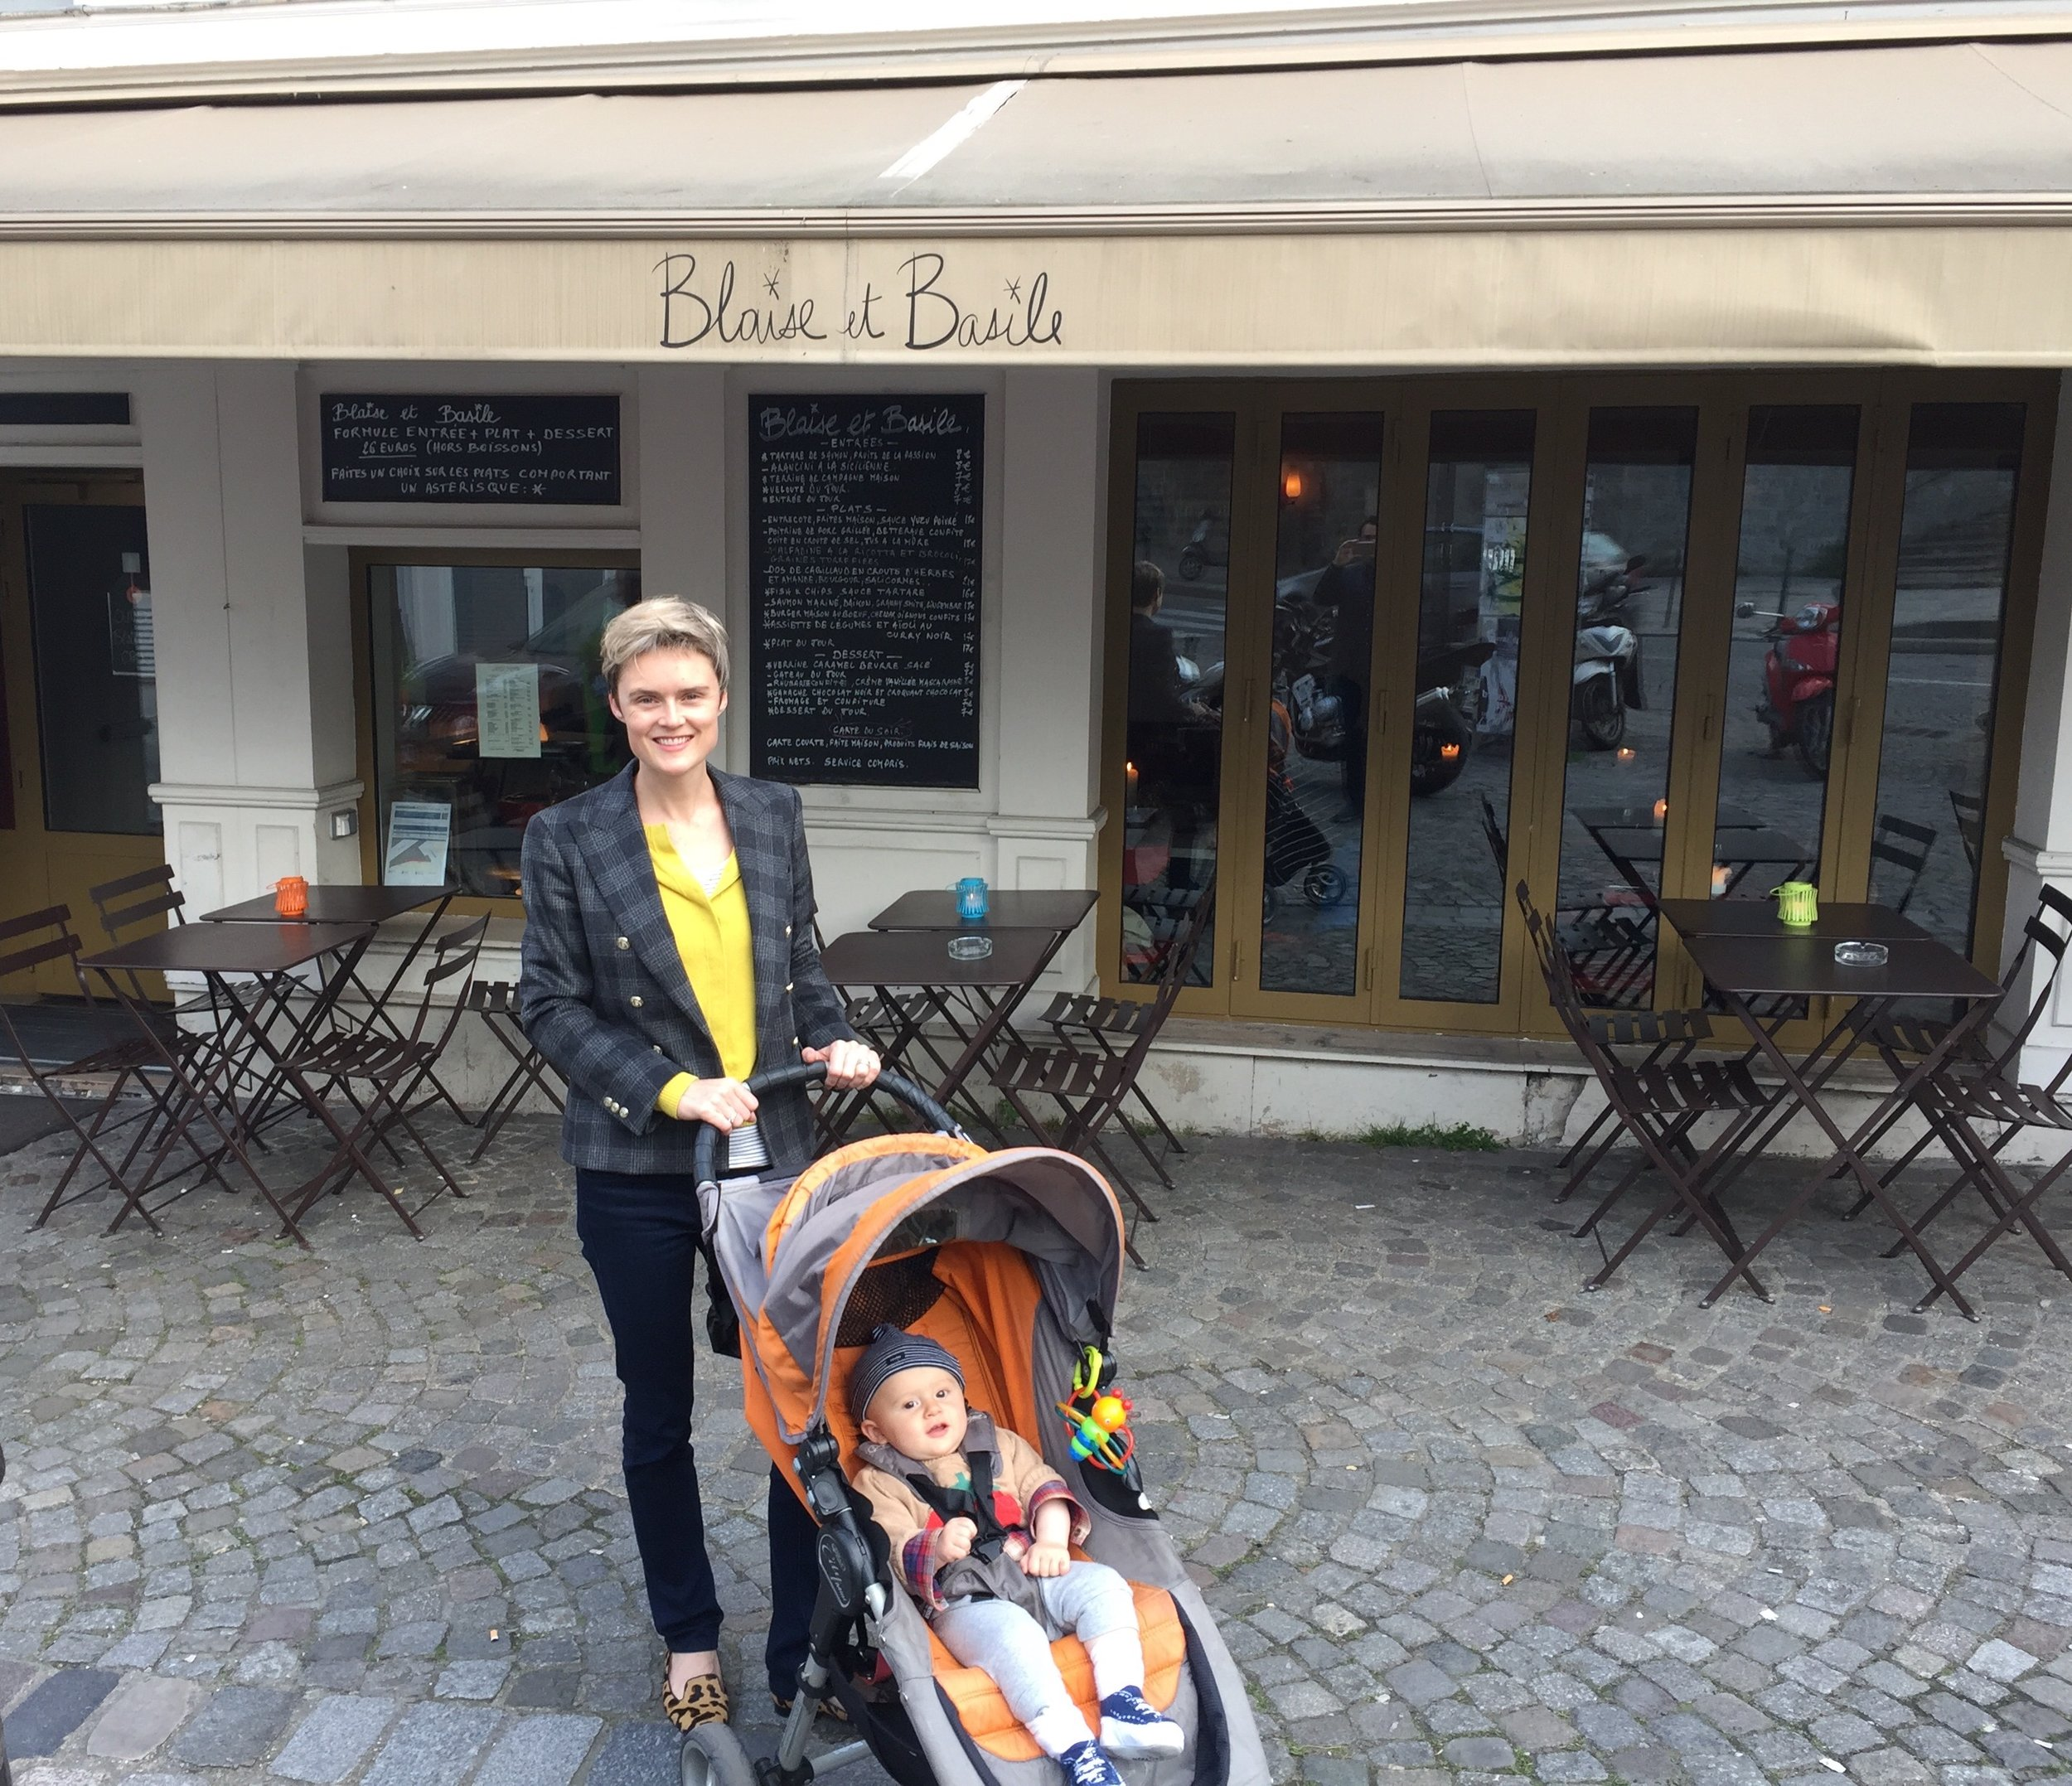 Me and Emile, getting used to the cobblestoned streets via stroller